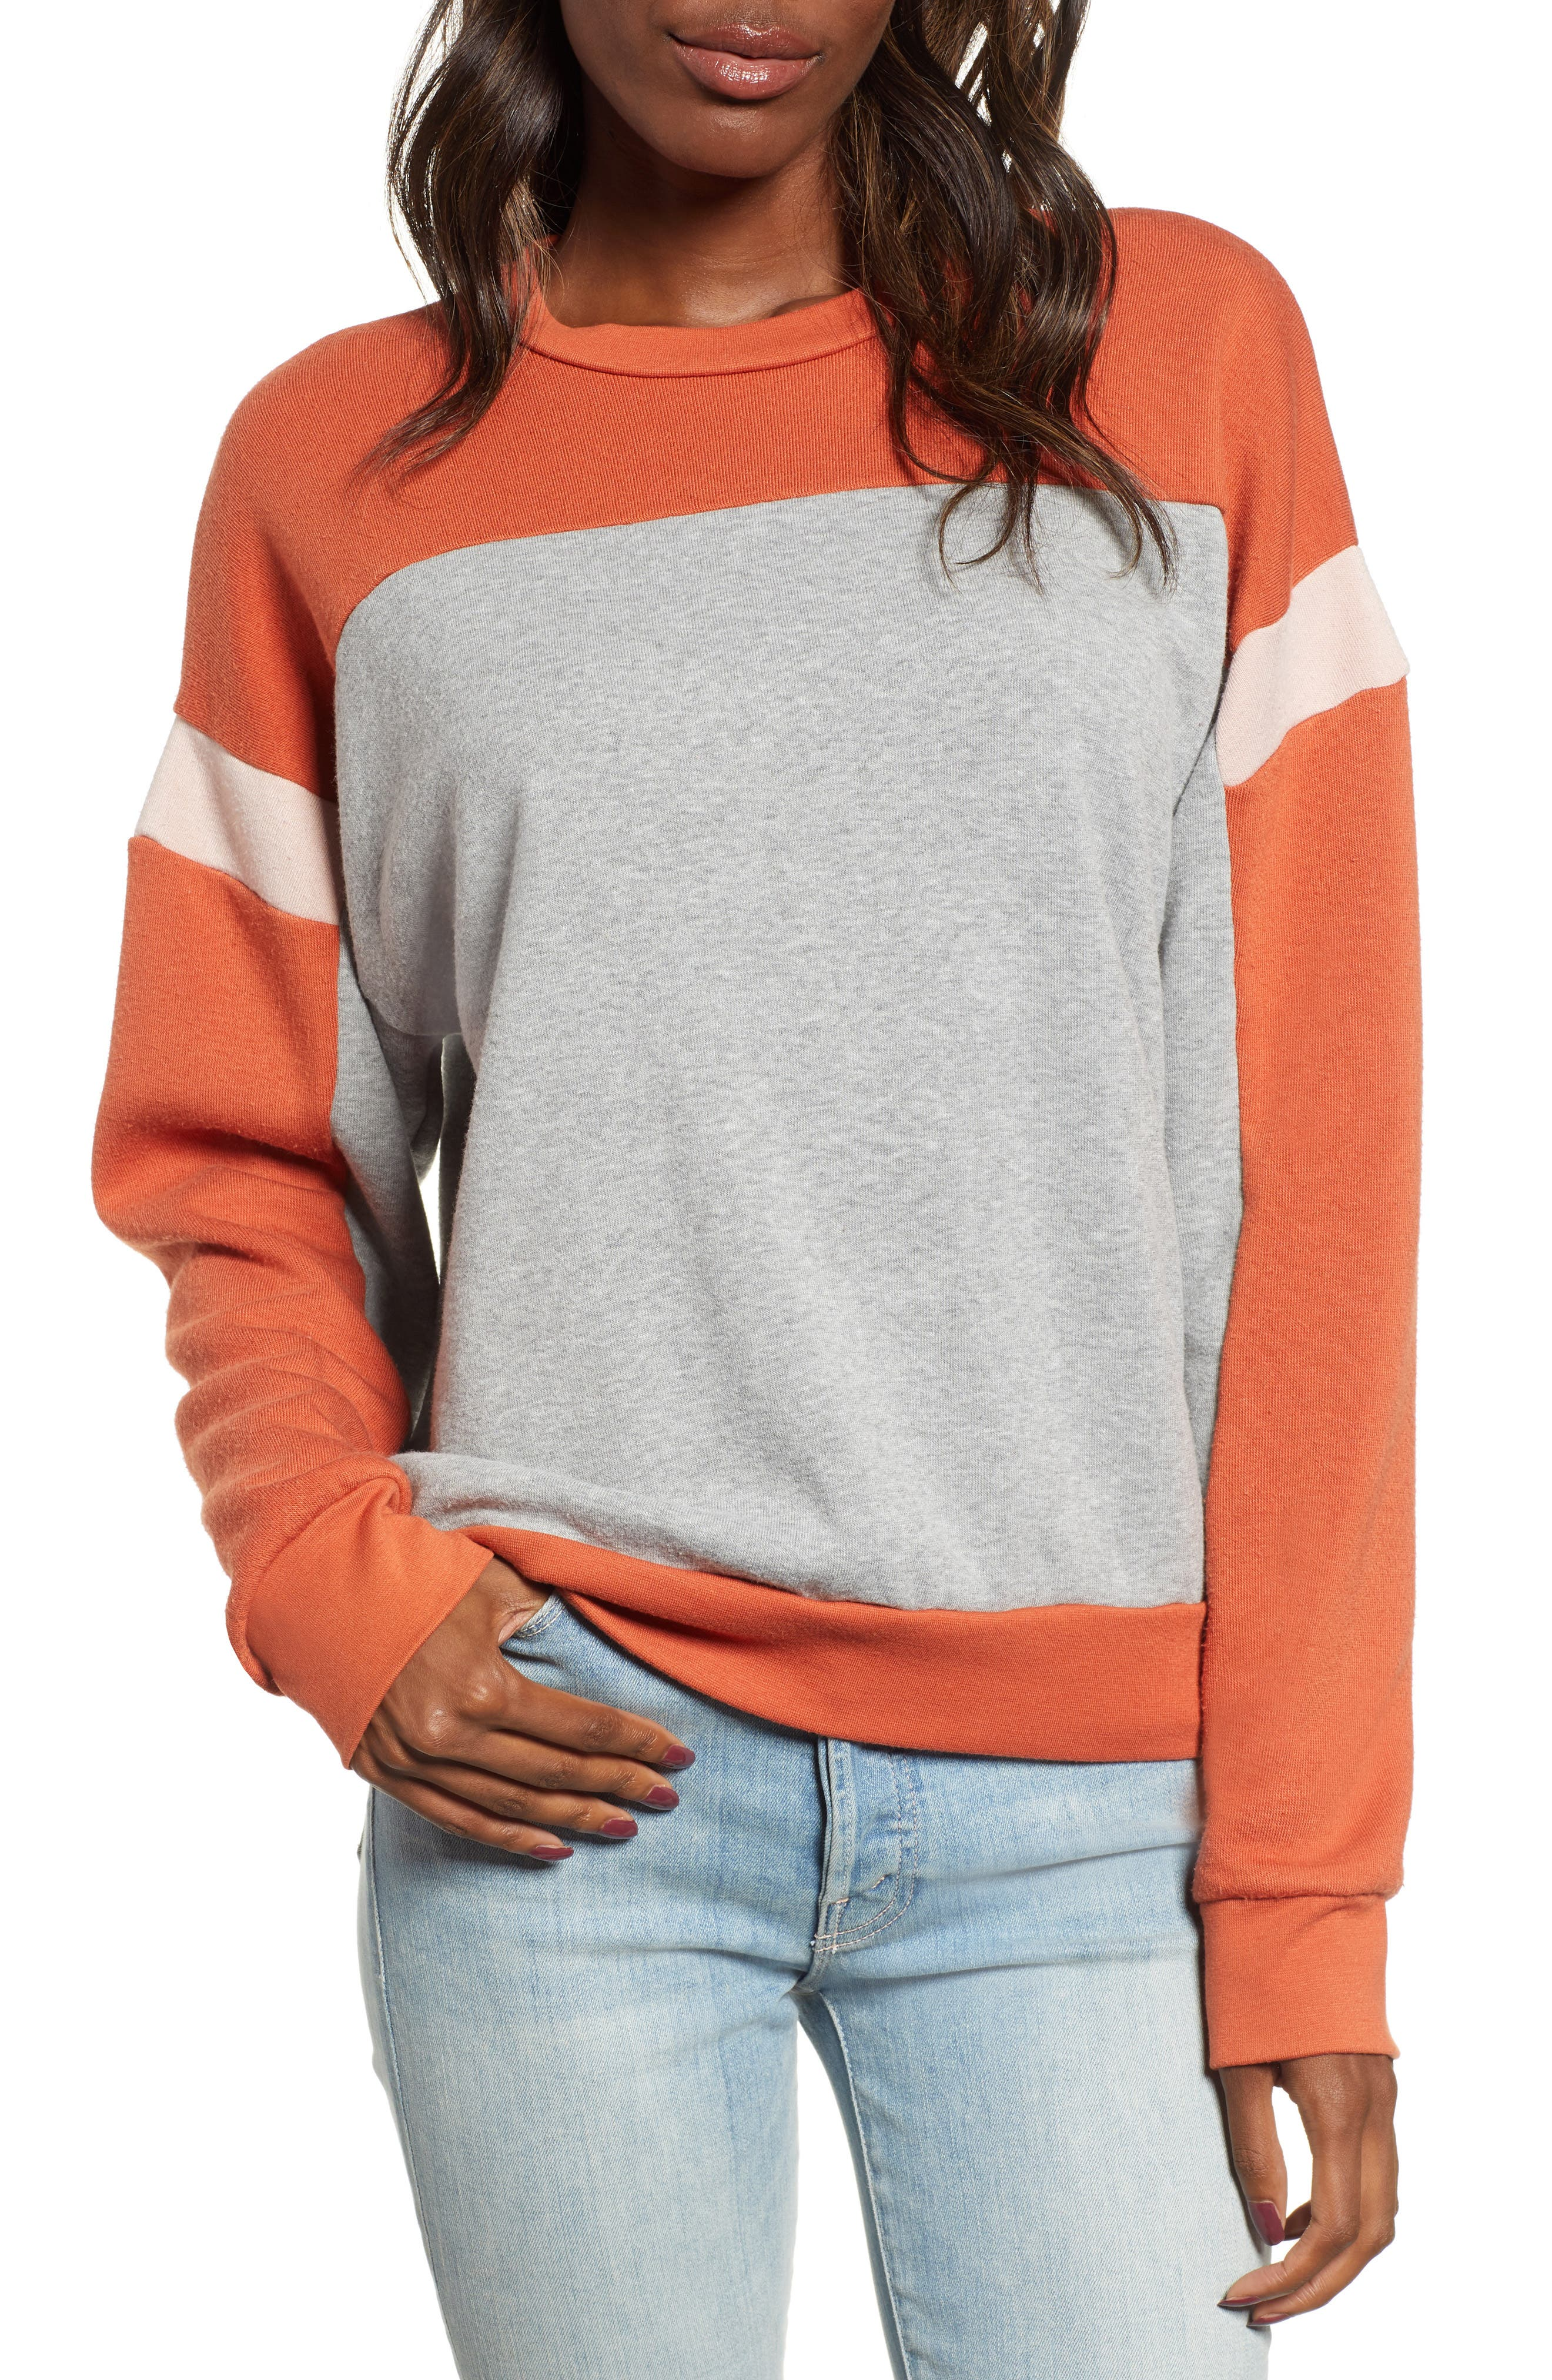 Rewind Colorblock Sweatshirt,                         Main,                         color, HEATHER GREY/ SERRANO